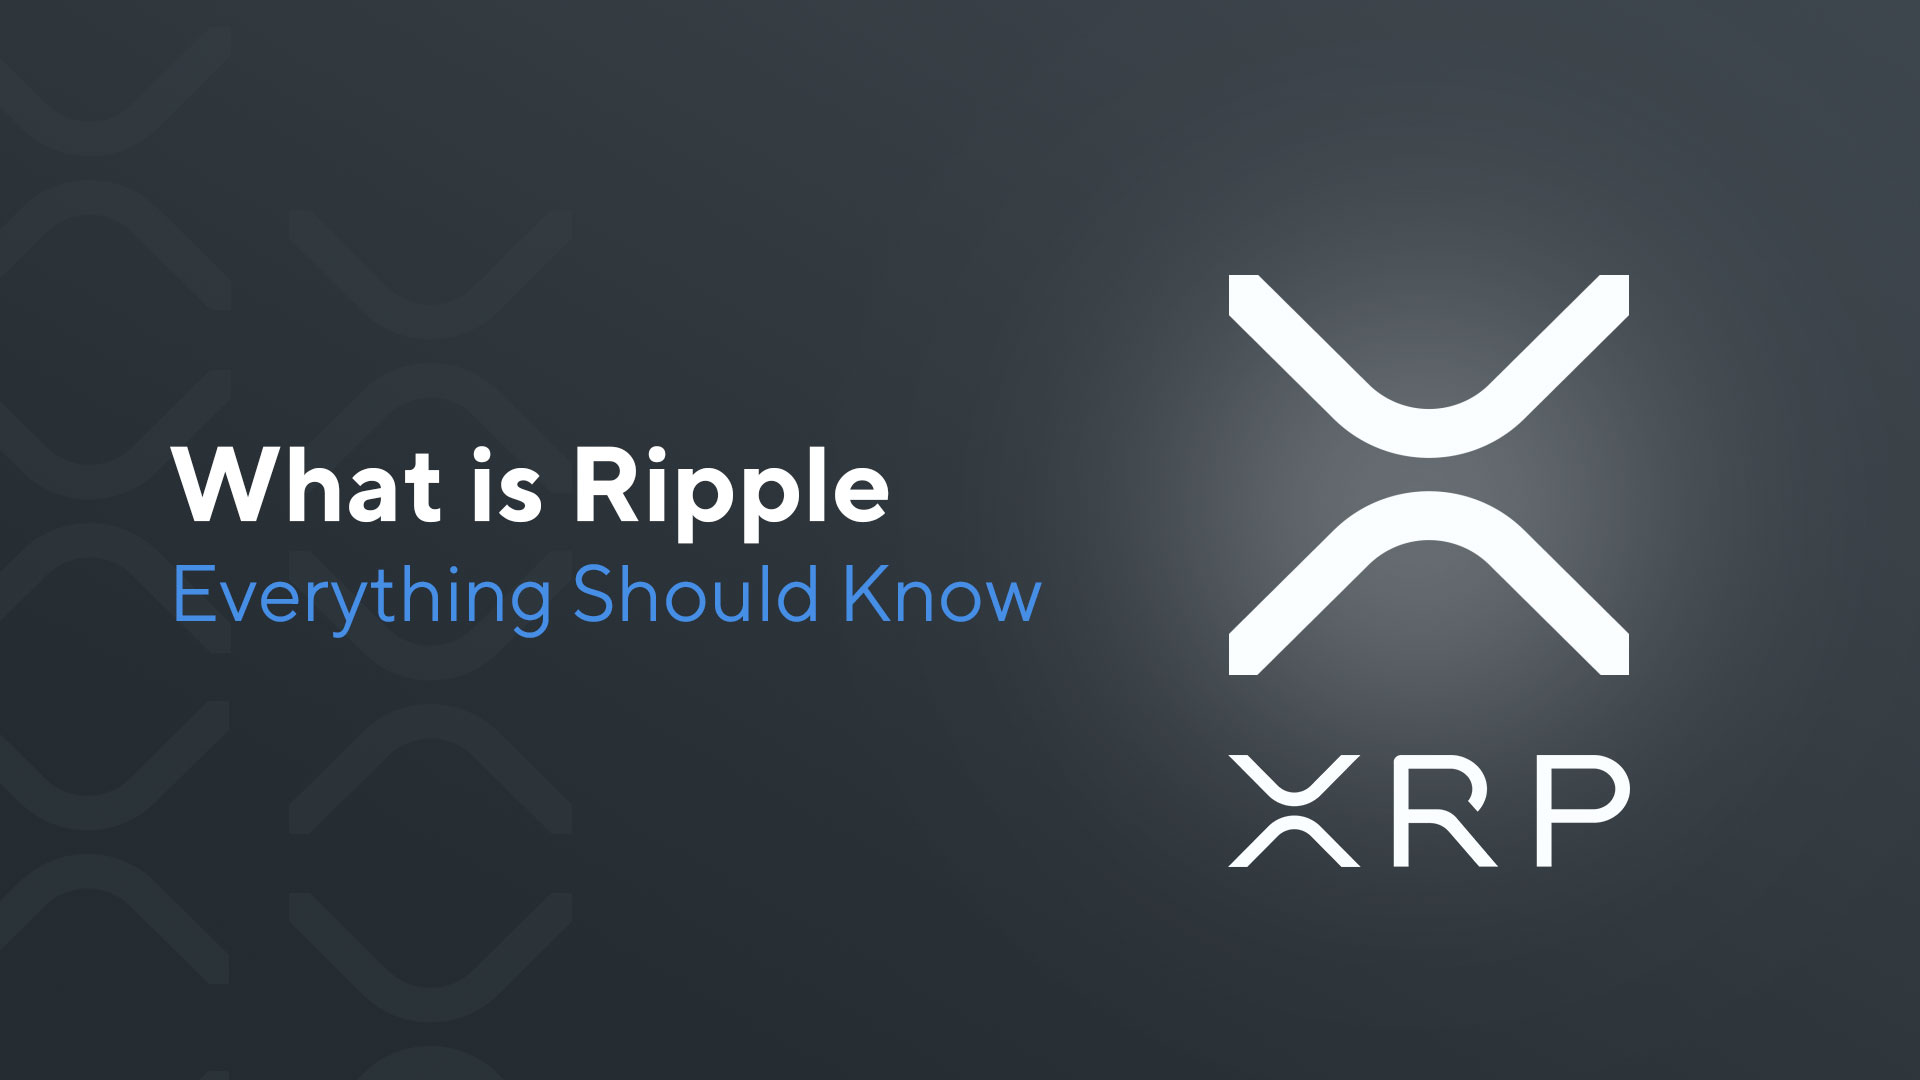 What is Ripple (XRP): Everything You Need to Know